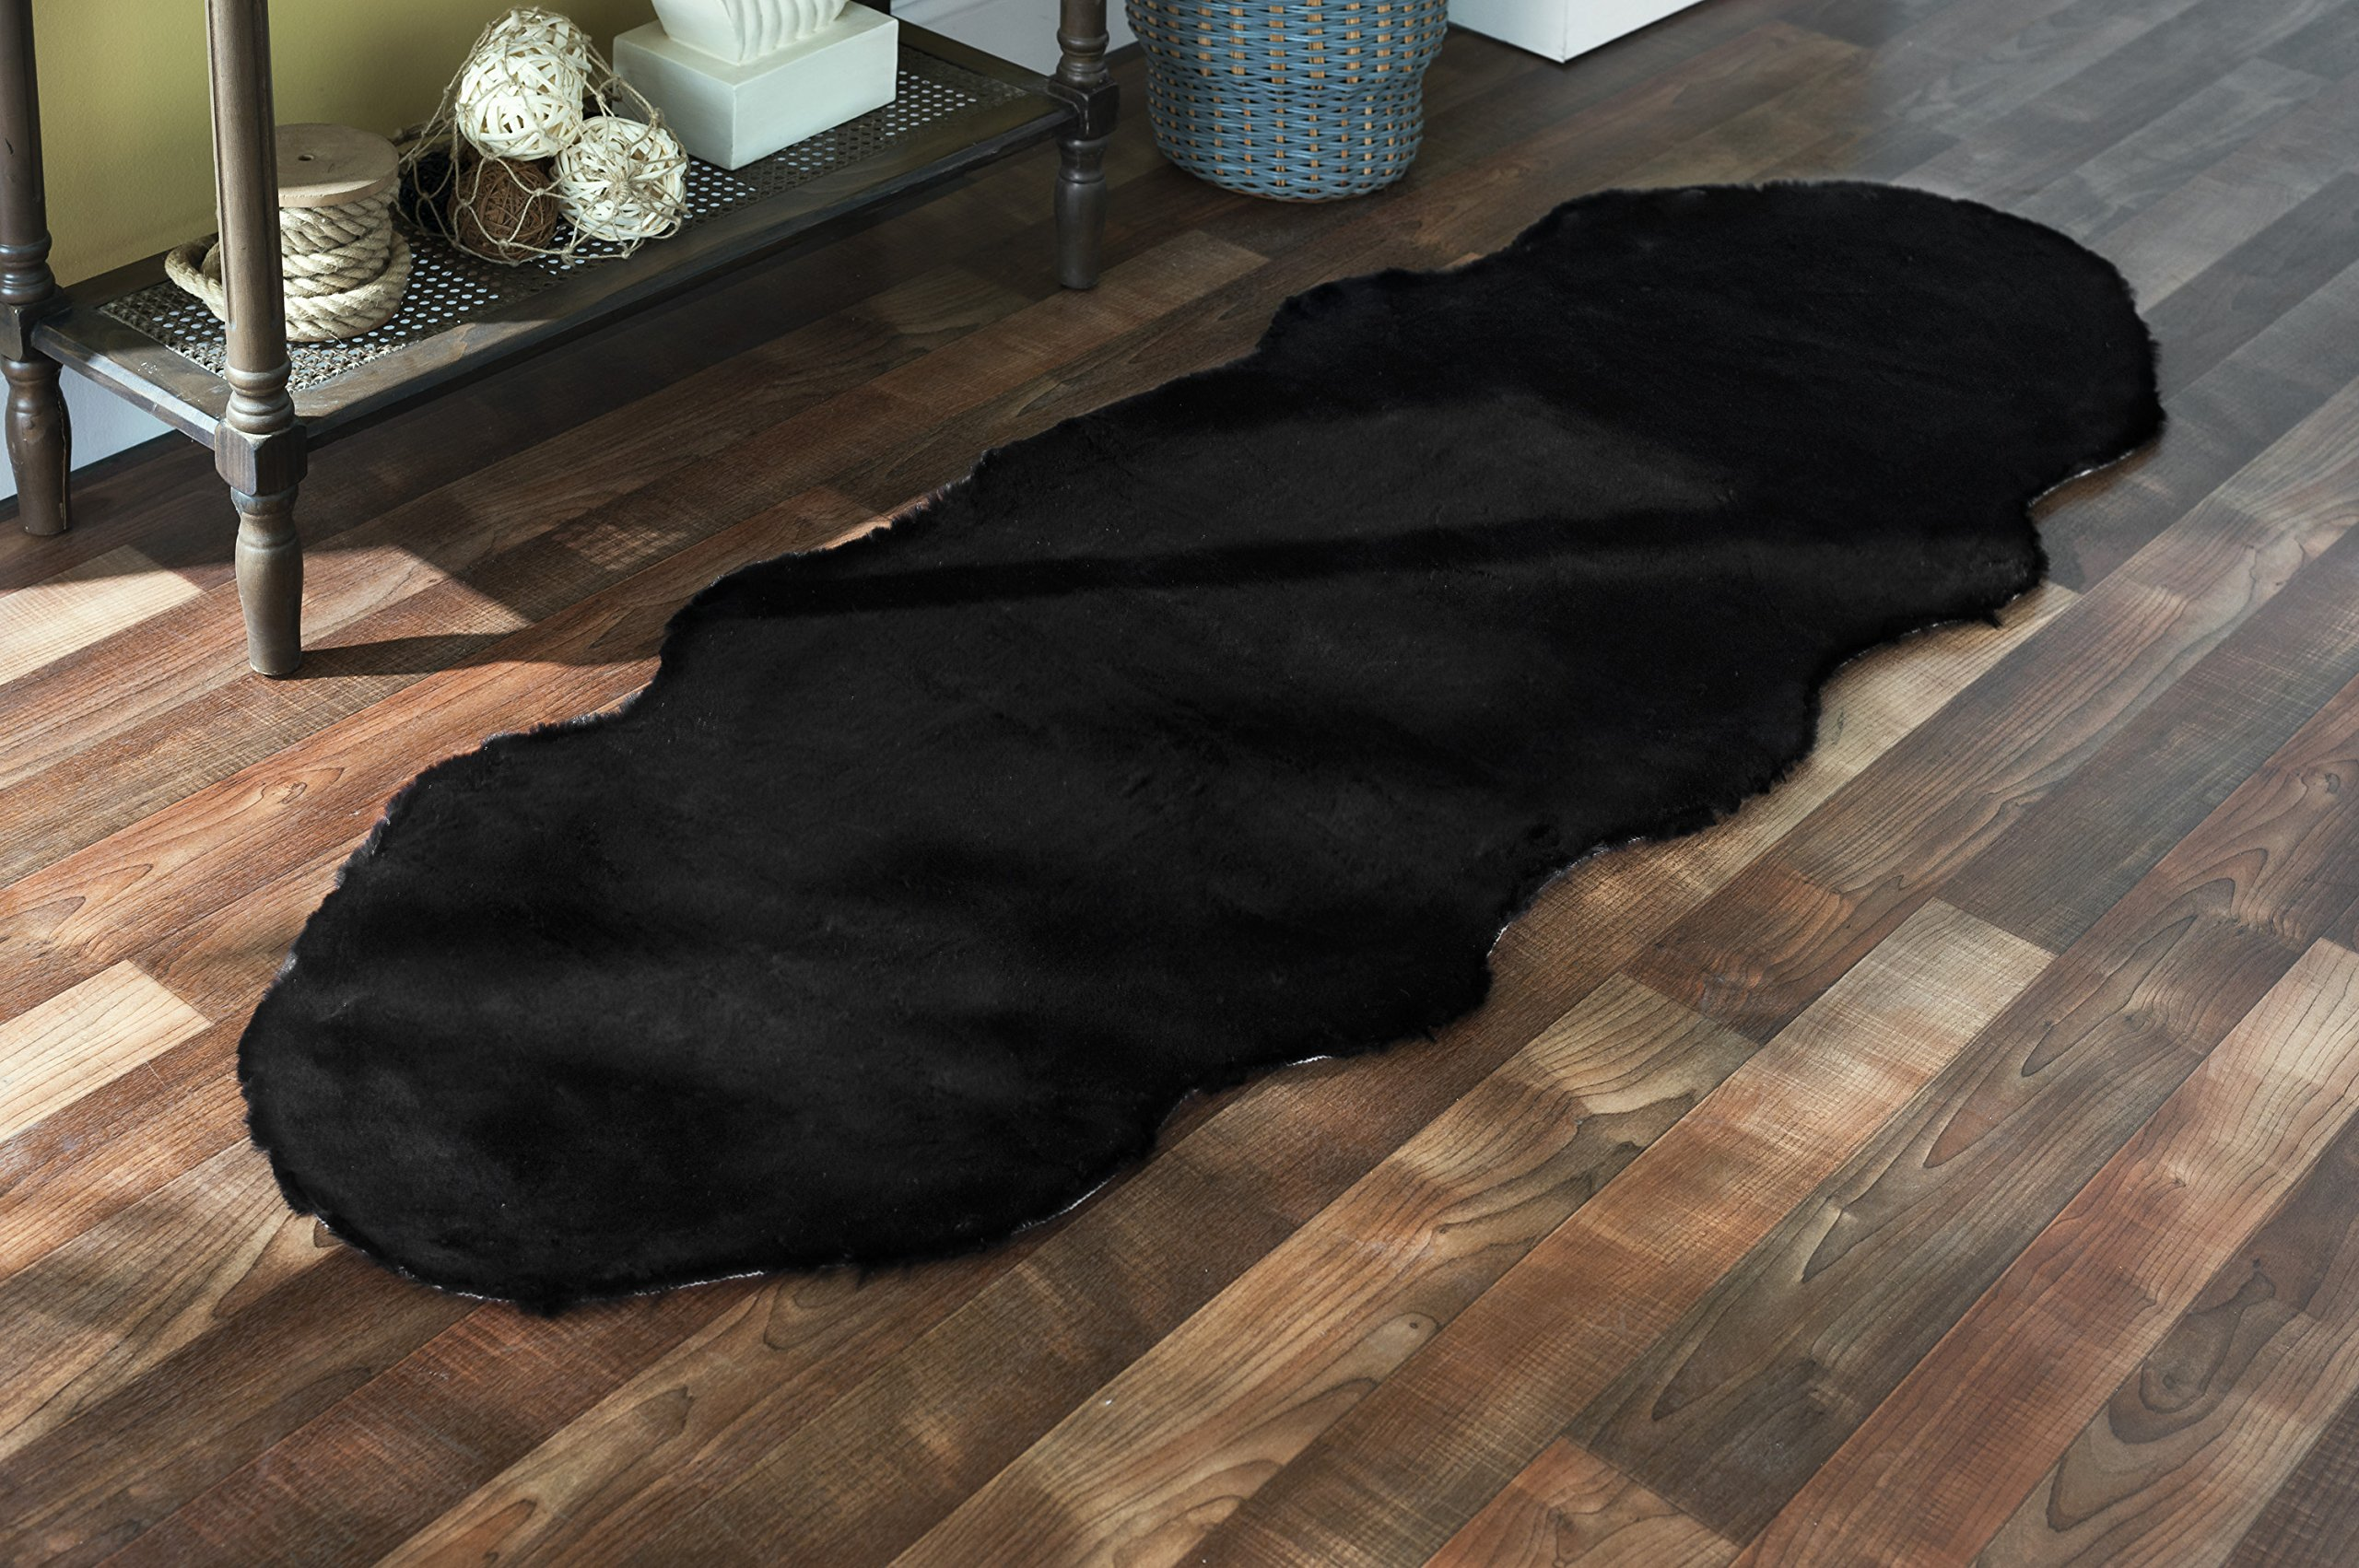 Walk on Me Faux Rabbit Area Rug - Plush, Fur Skin, Sheepskin, Suede Hide, 100% Polyester, Washable Animal Rug - Extreme Comfort, Softness, Stylish - Living Room & Dining Area (24''x72'', Black)